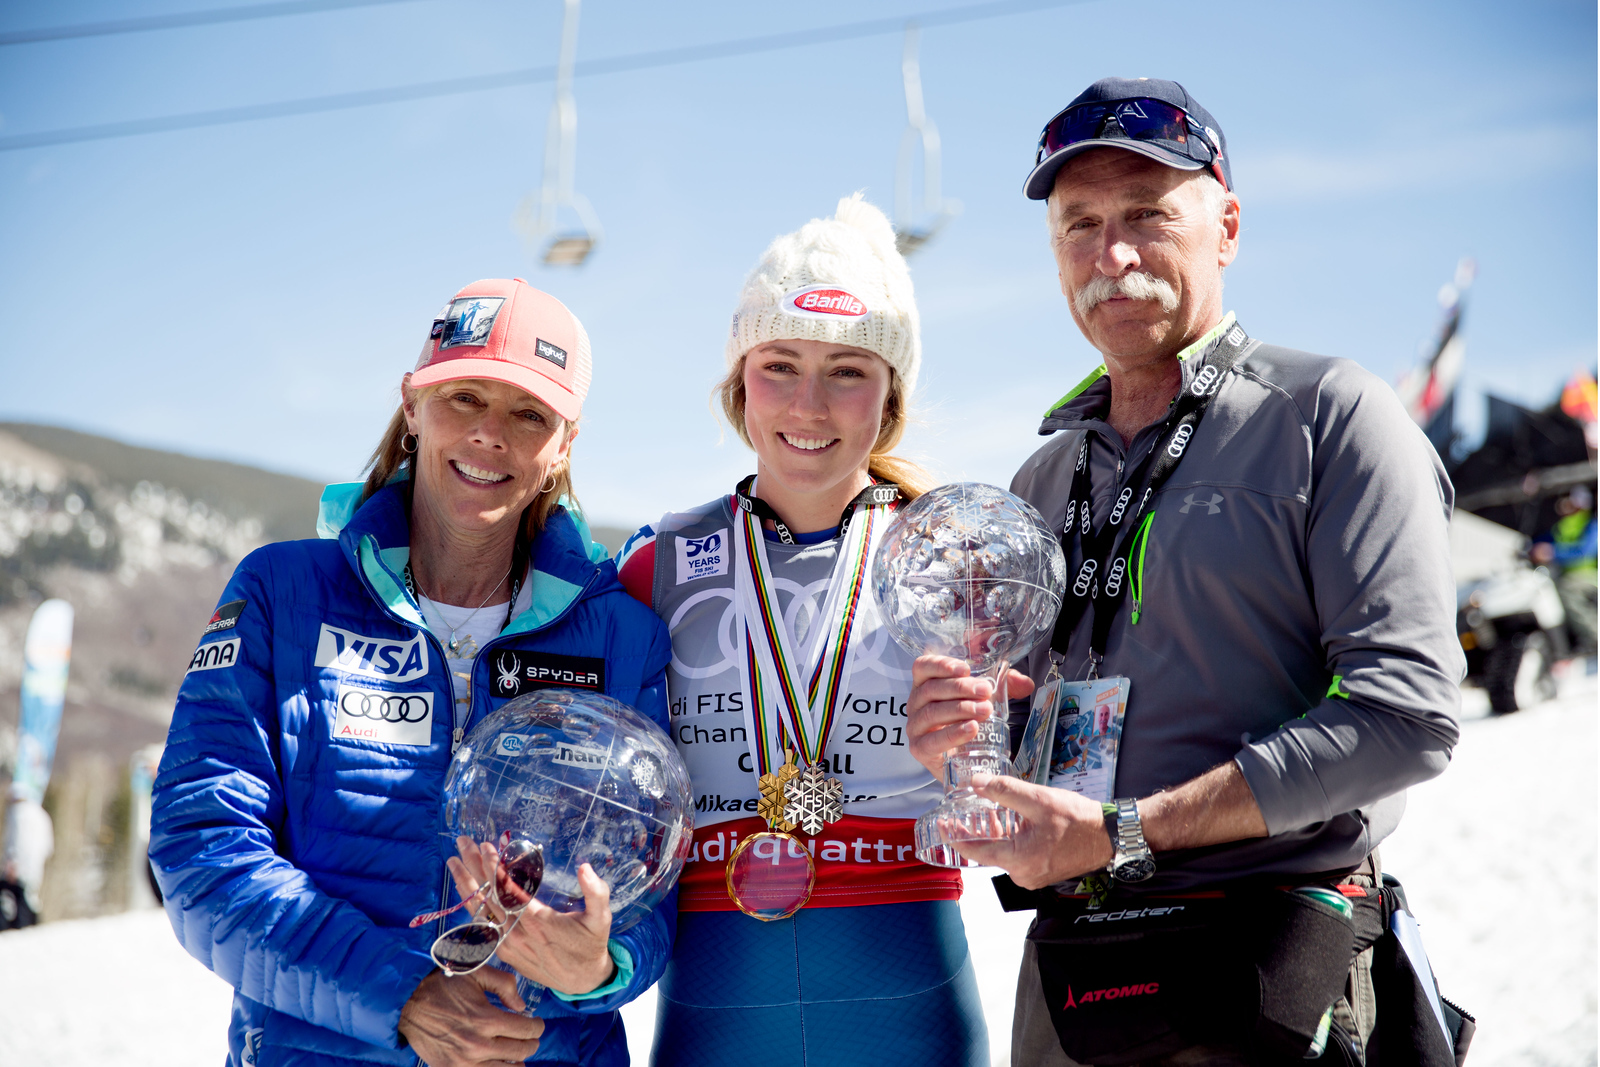 Mikaela Shiffrin with her parents 2016-17 Alpine Overall World Cup Champion Crystal Globe 2017 Audi FIS Ski World Cup finals in Aspen, CO. Photo: U.S. Ski Team